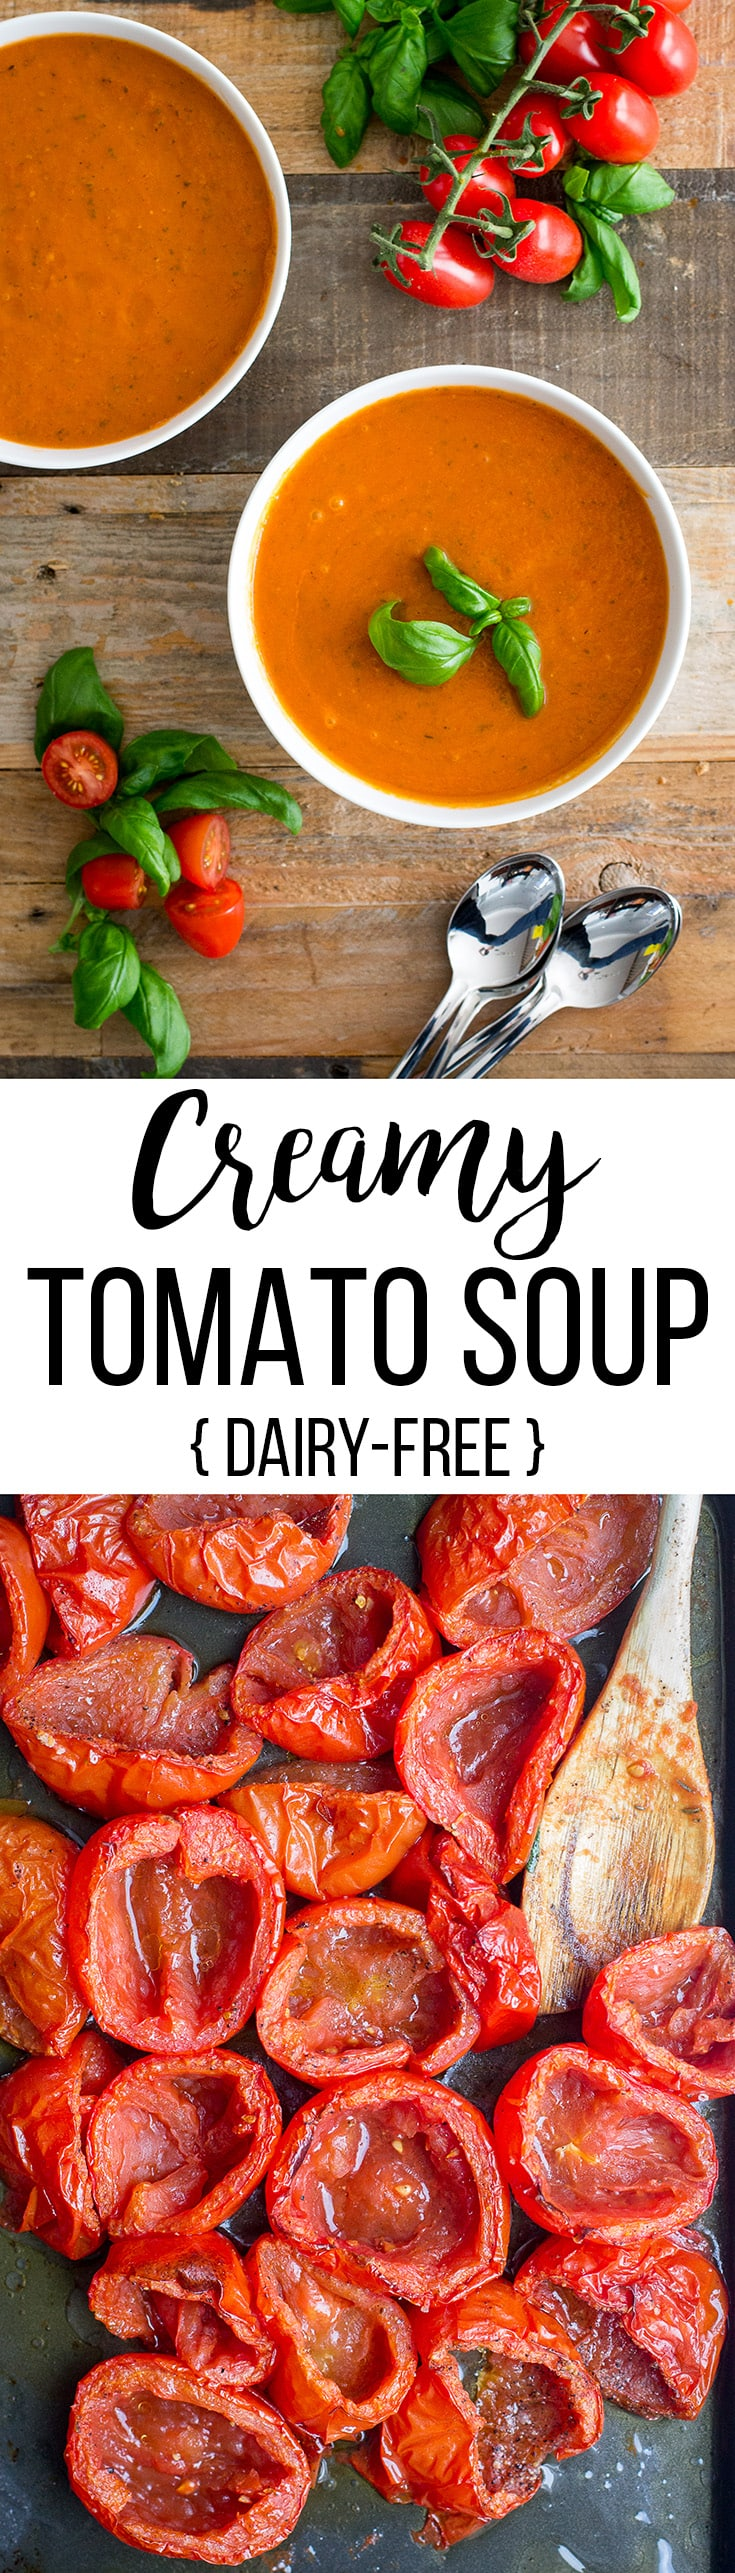 Creamy roasted tomato basil soup | A simple dairy-free recipe for the best bowl of comfort food. #tomatosoup #dairyfree